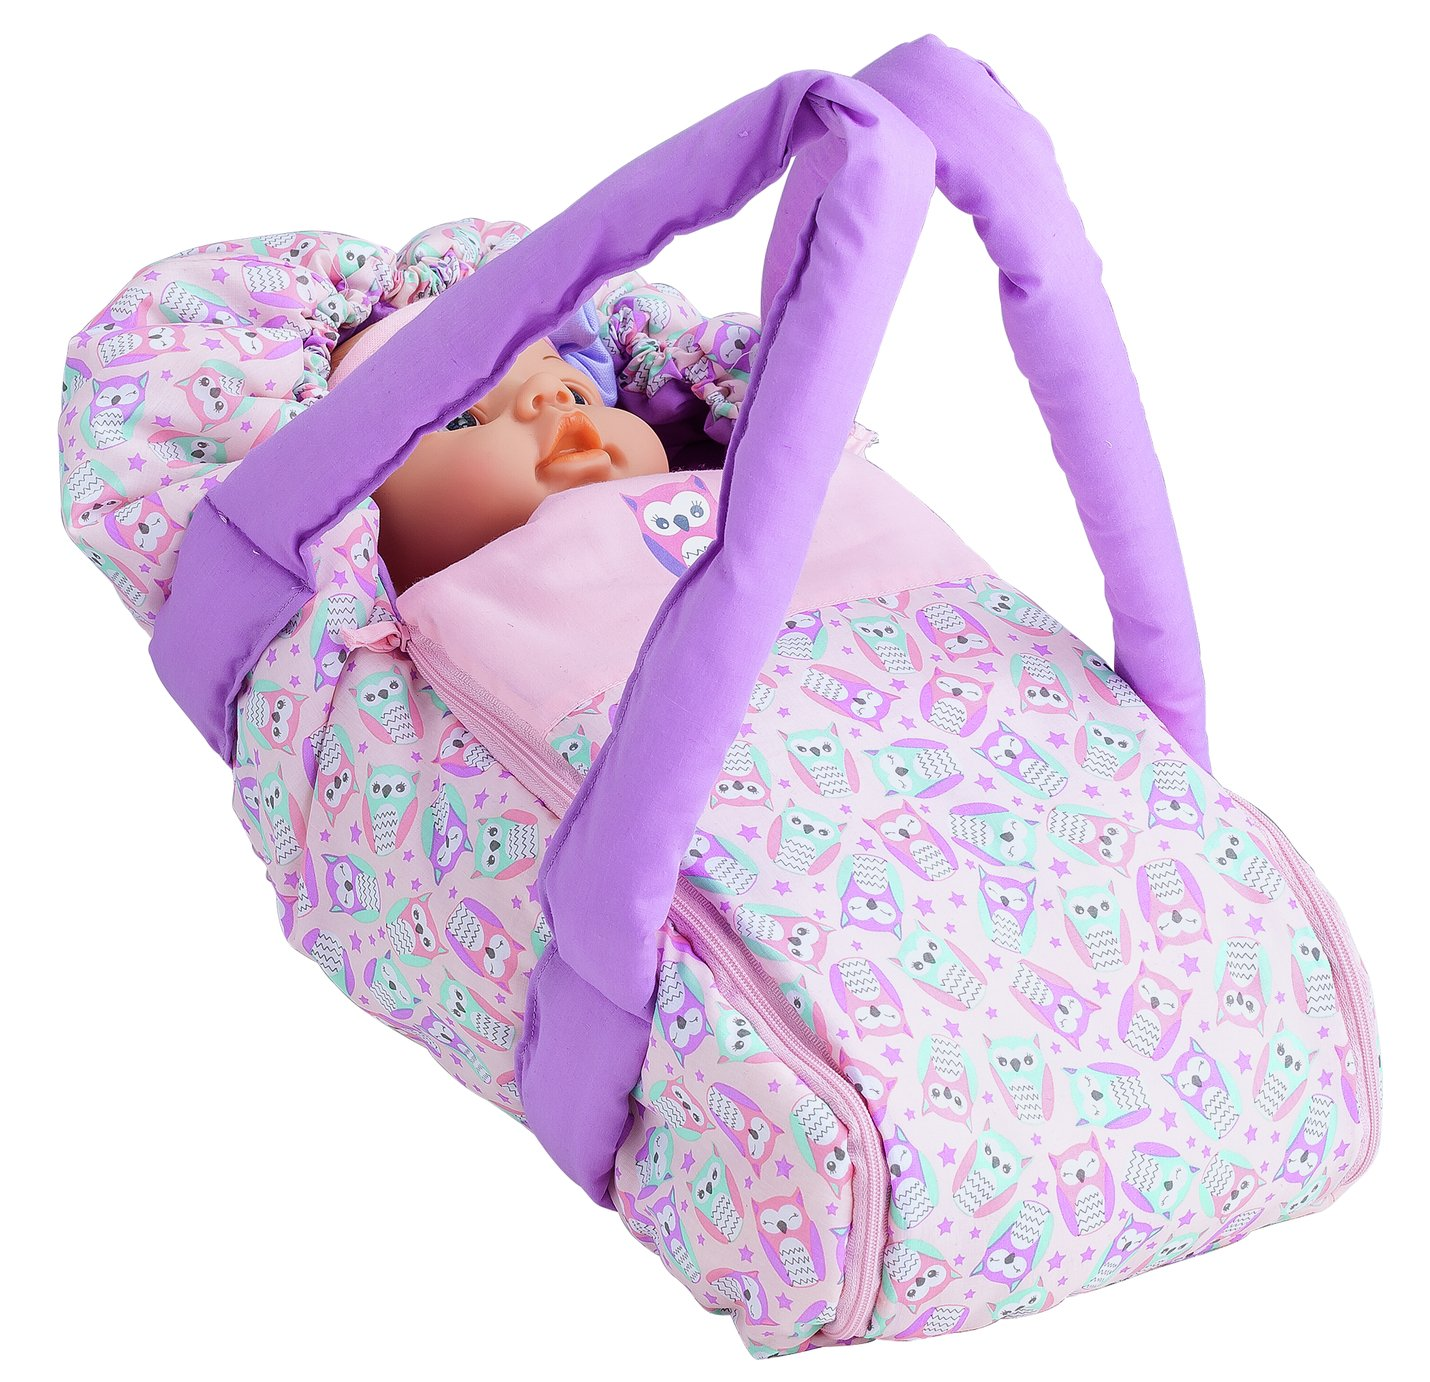 Chad Valley Babies to Love Carrycot & Doll Set